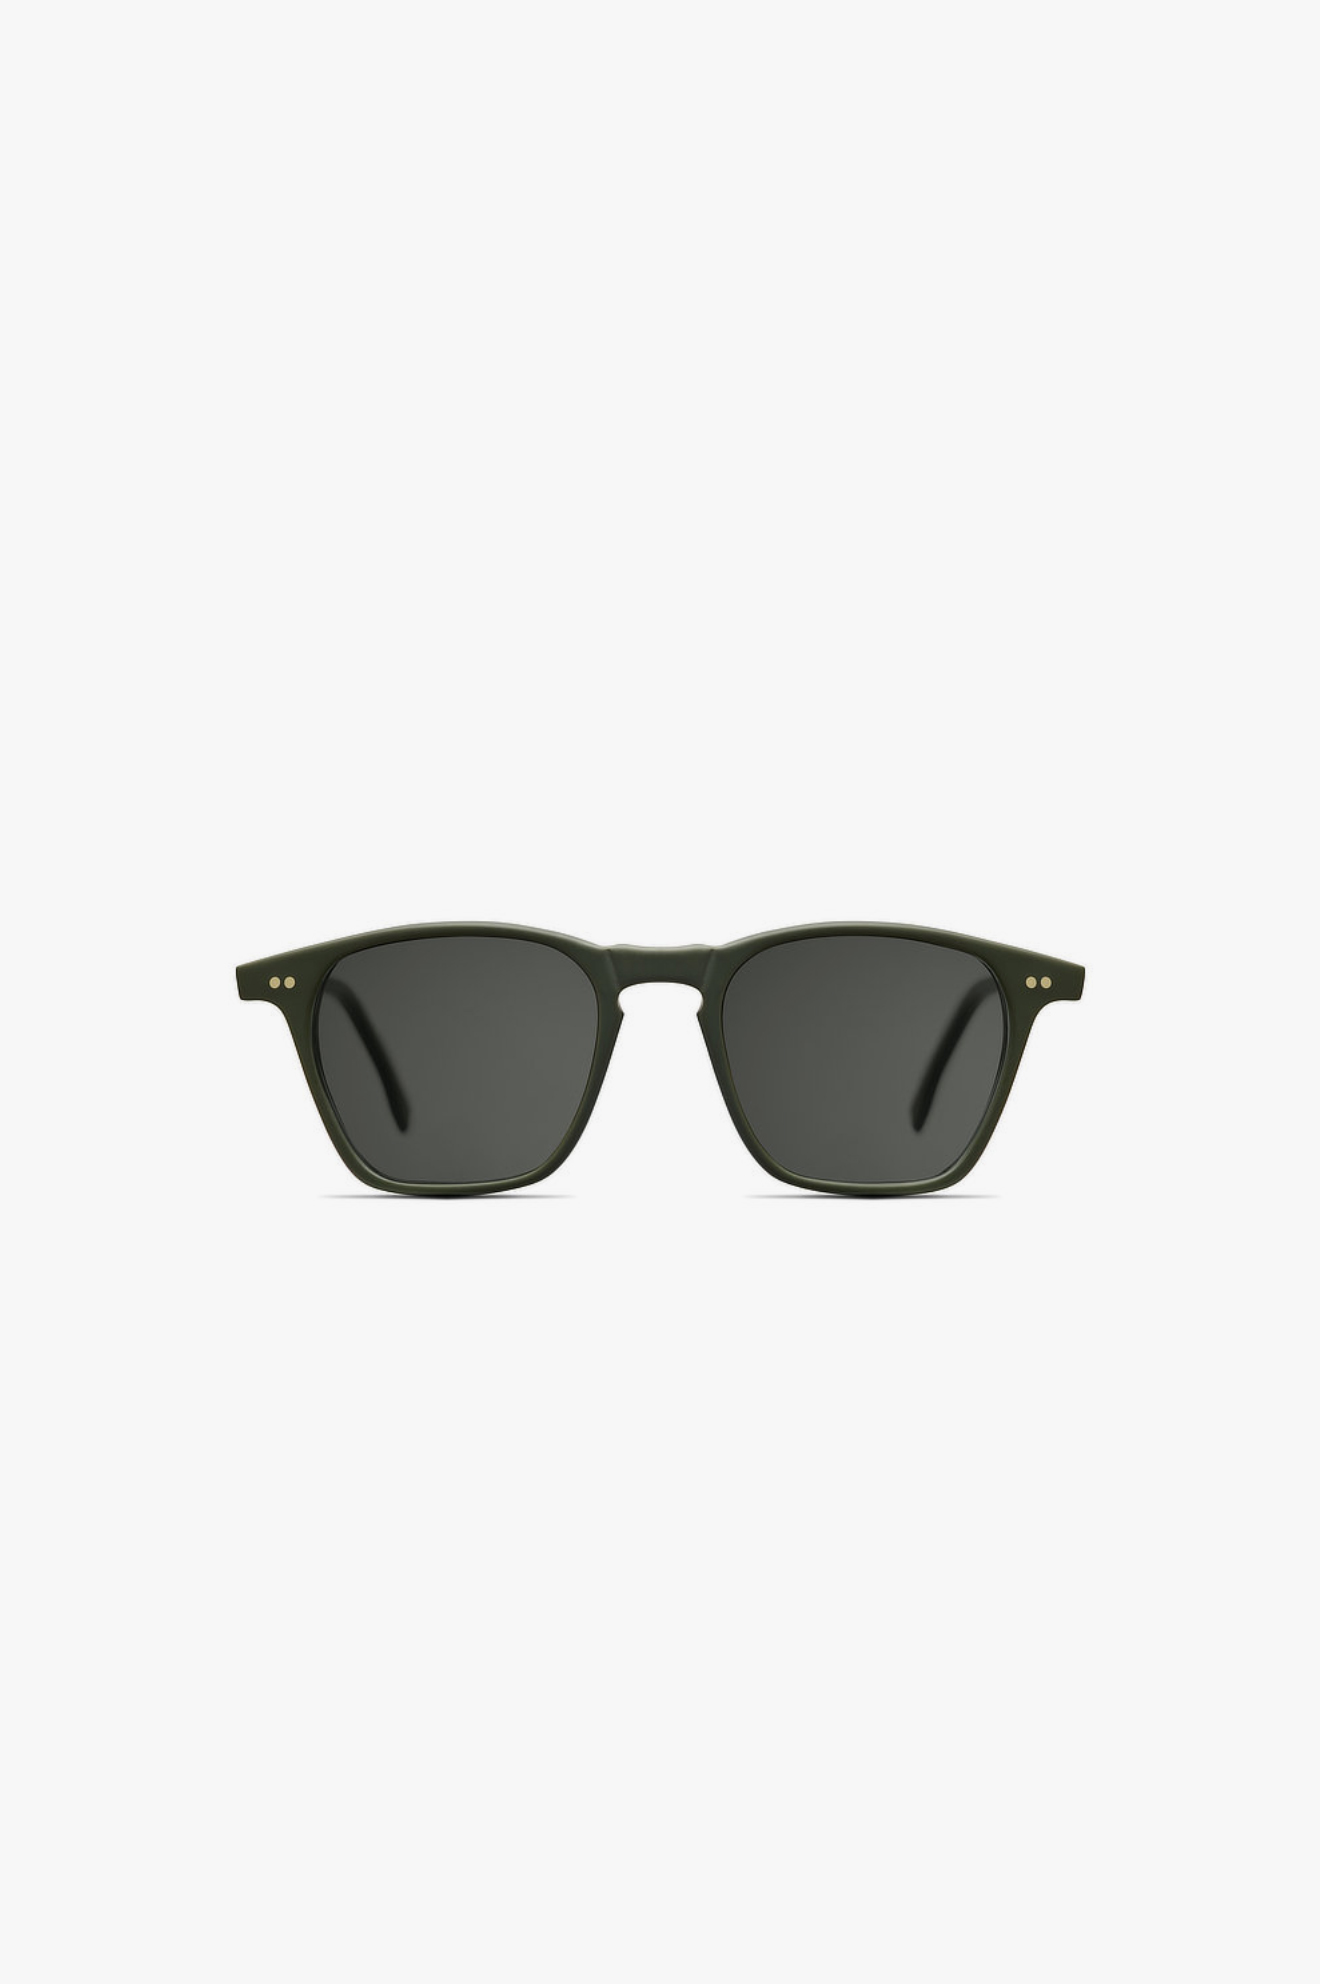 Notorious Sunglasses Army Green Matte